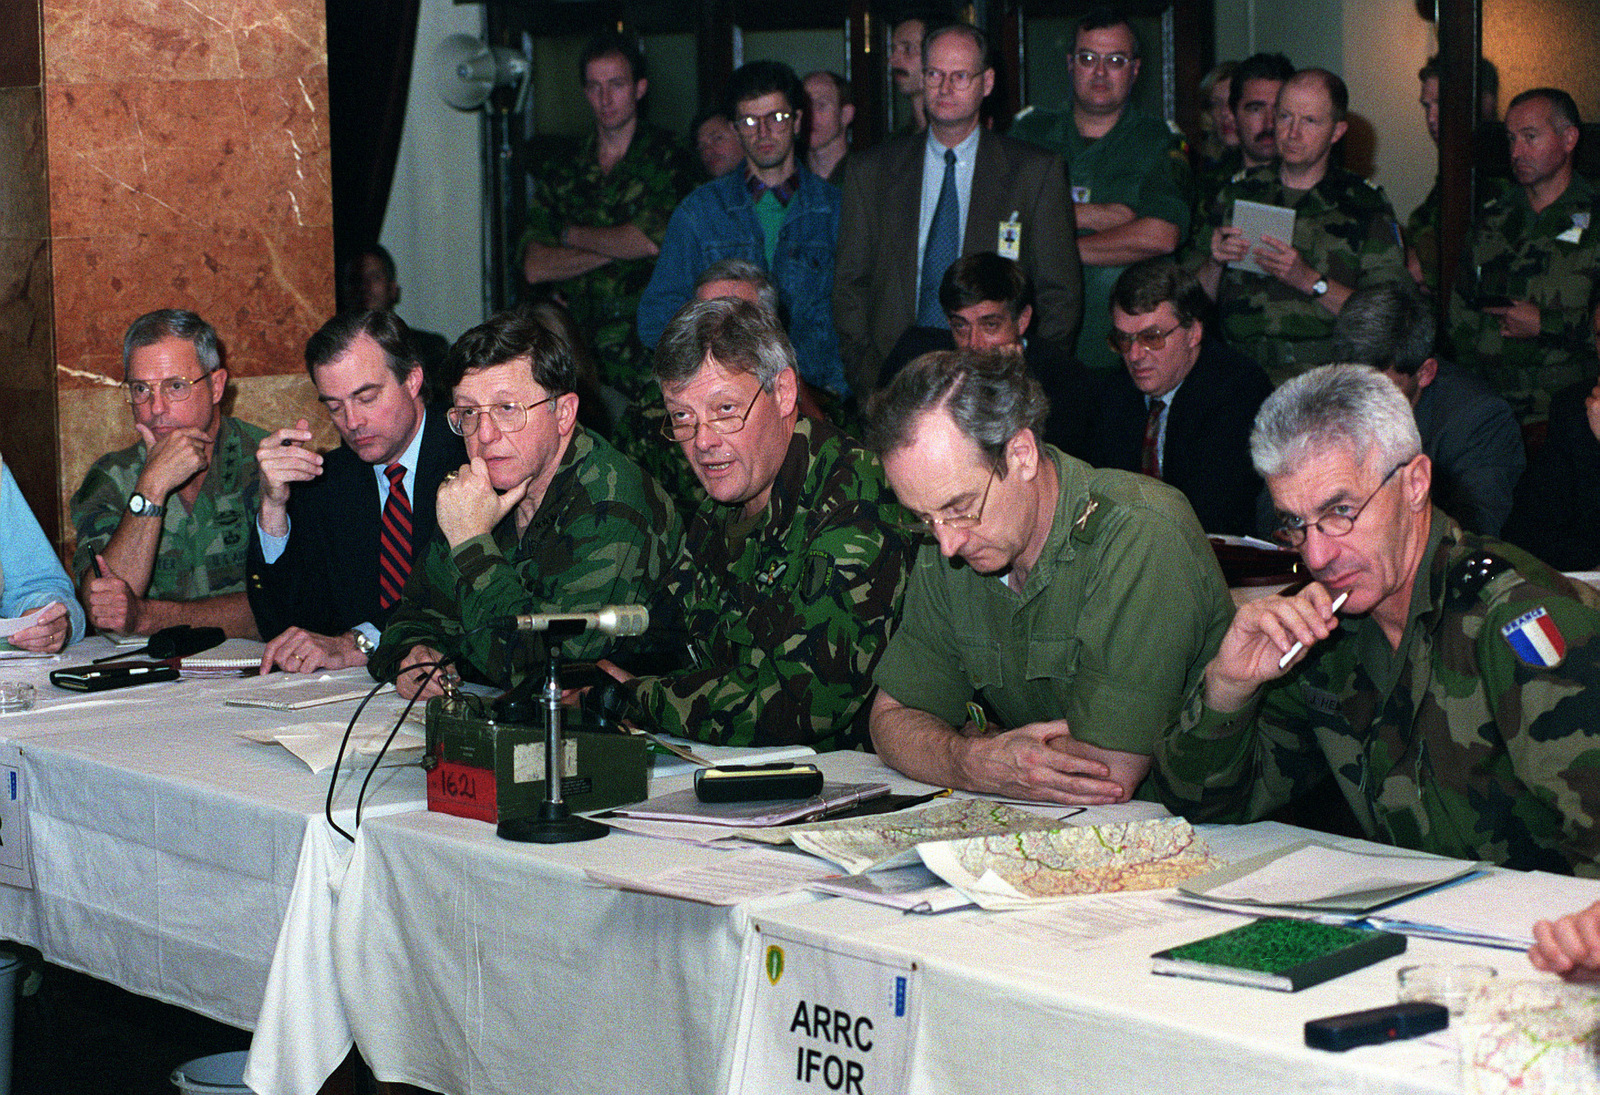 (left to right) Mr. Richard Sklar, Lieutenant General Bill Carter, Implementation Forces CHIEF of STAFF, Mr. Jock Covey, Office of the High Representative (Bosnia and Herzegovina) CHIEF of STAFF, locate a city being discussed by US Navy Admiral T. Joseph Lopez, Allied Forces Southern Europe, United States Naval Forces Europe and Implementation Forces Commander, UK Army Lieutenant General Sir Michael Walker, Allied Rapid Reaction Corps Commander, UK Army Major General Tim Sulivan, Allied Rapid Reaction Corps, CHIEF of STAFF and French Army Lieutenant General Jean Heinrich, Deputy Commander Implementation Force. Many organizations comprise the Joint (JOEC) at the Allied Rapid Reaction Corps...